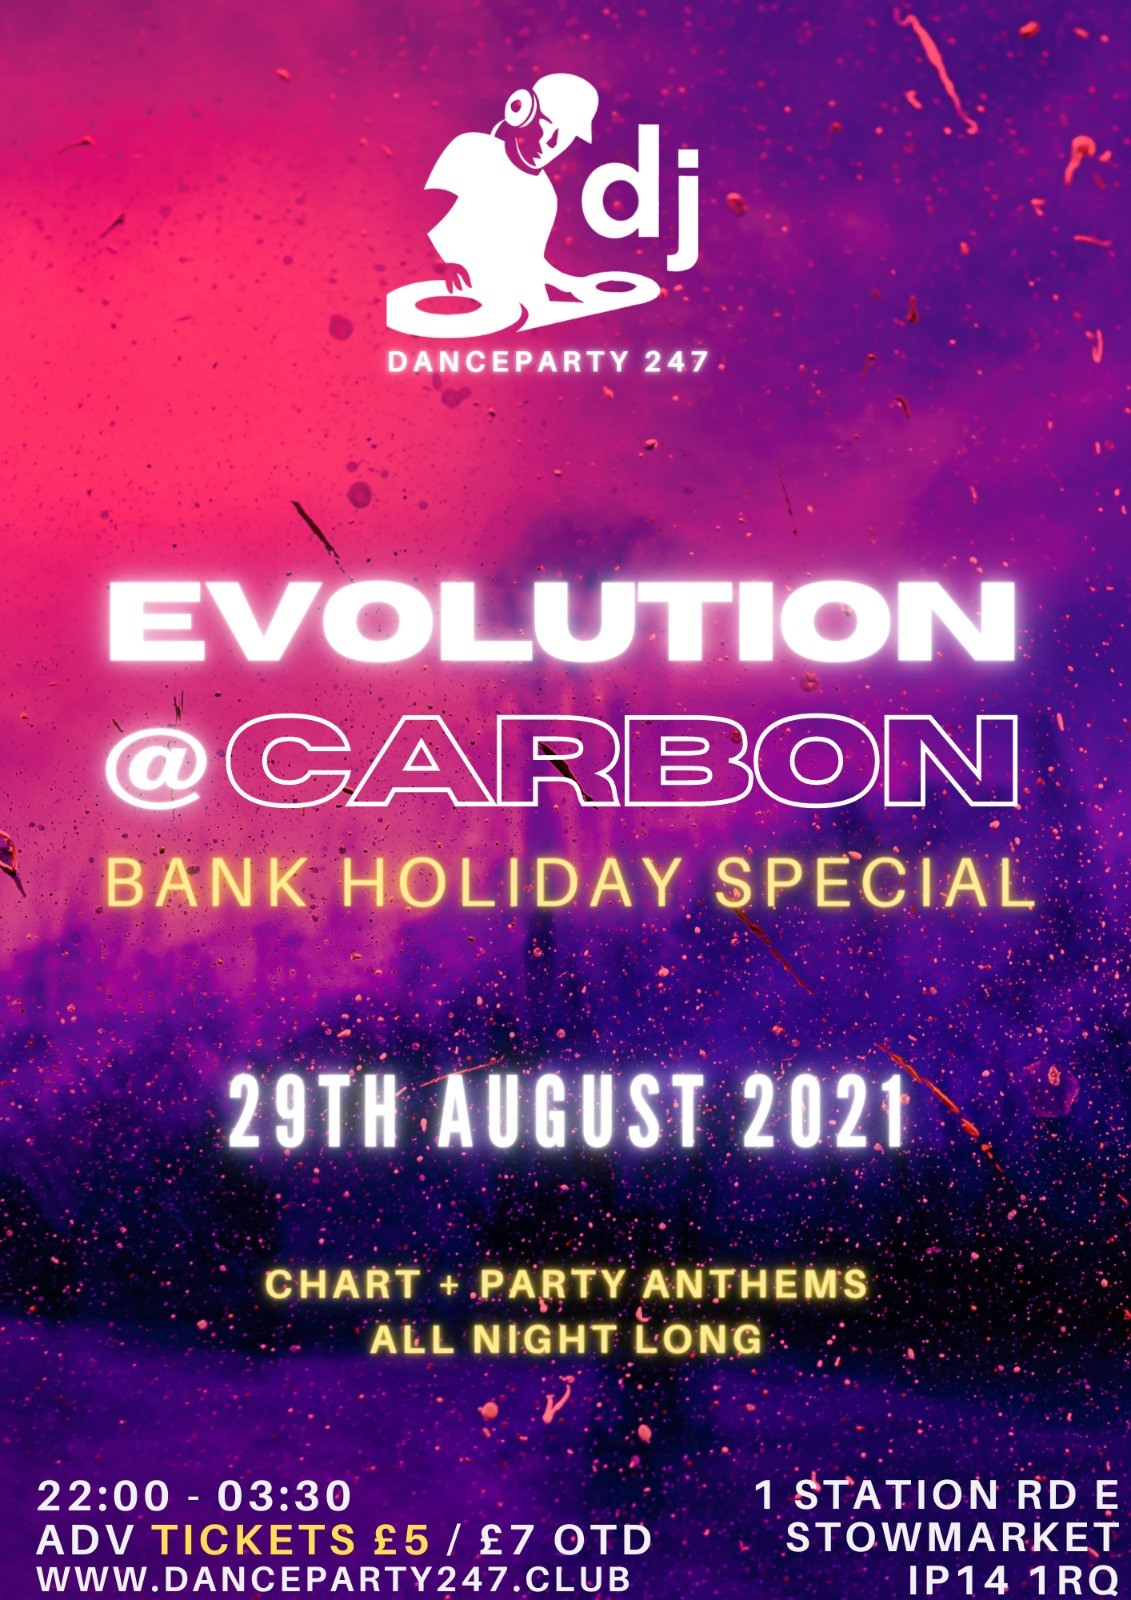 Evolution  on Jul 30, 22:30@Carbon - Buy tickets and Get information on www.danceparty247.club